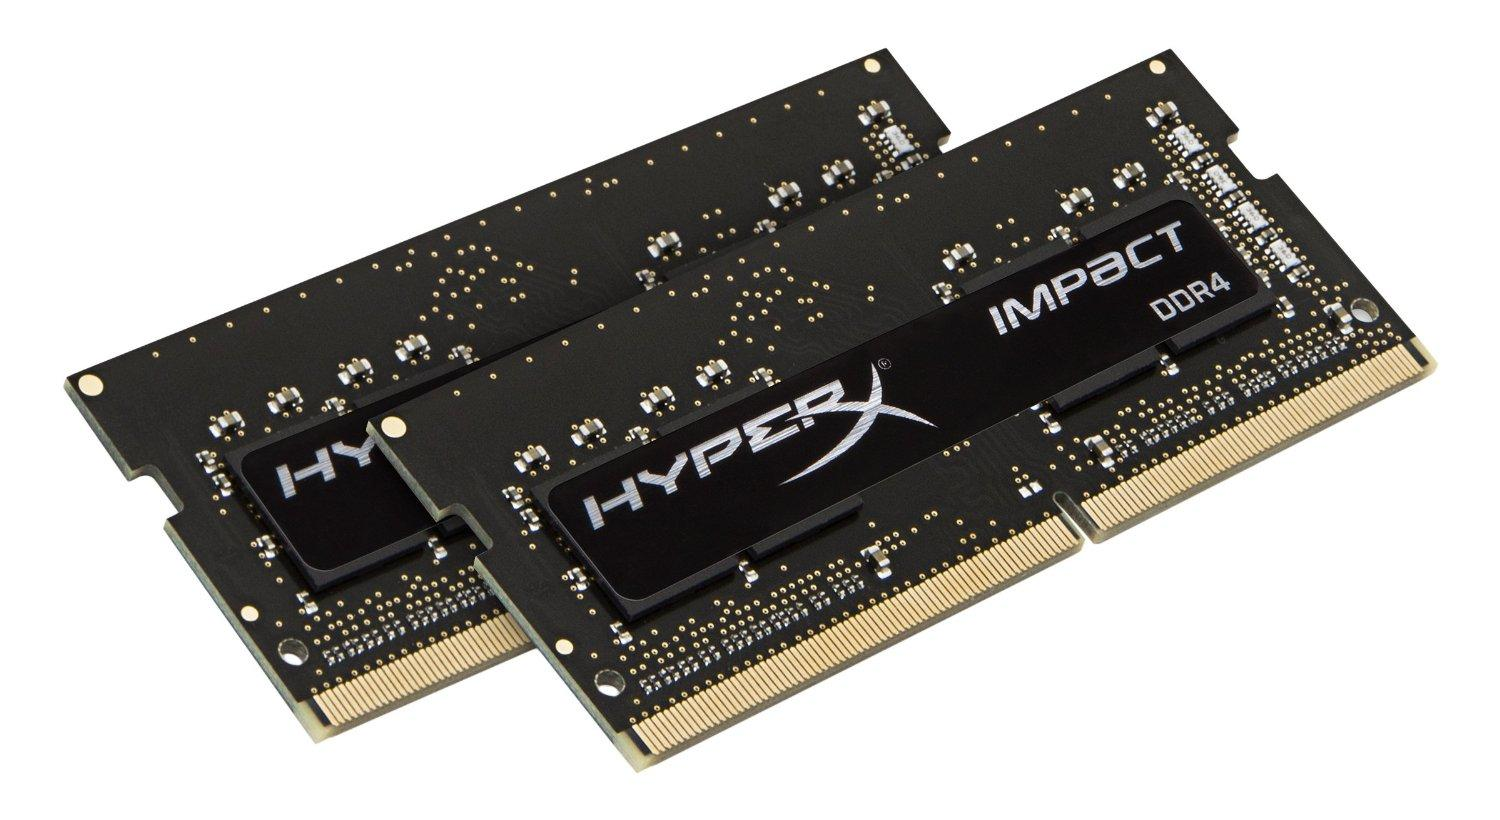 Kingston HyperX Impact 16GB Kit (2 x 8GB) 2400MHz DDR4 CL14 Laptop Memory